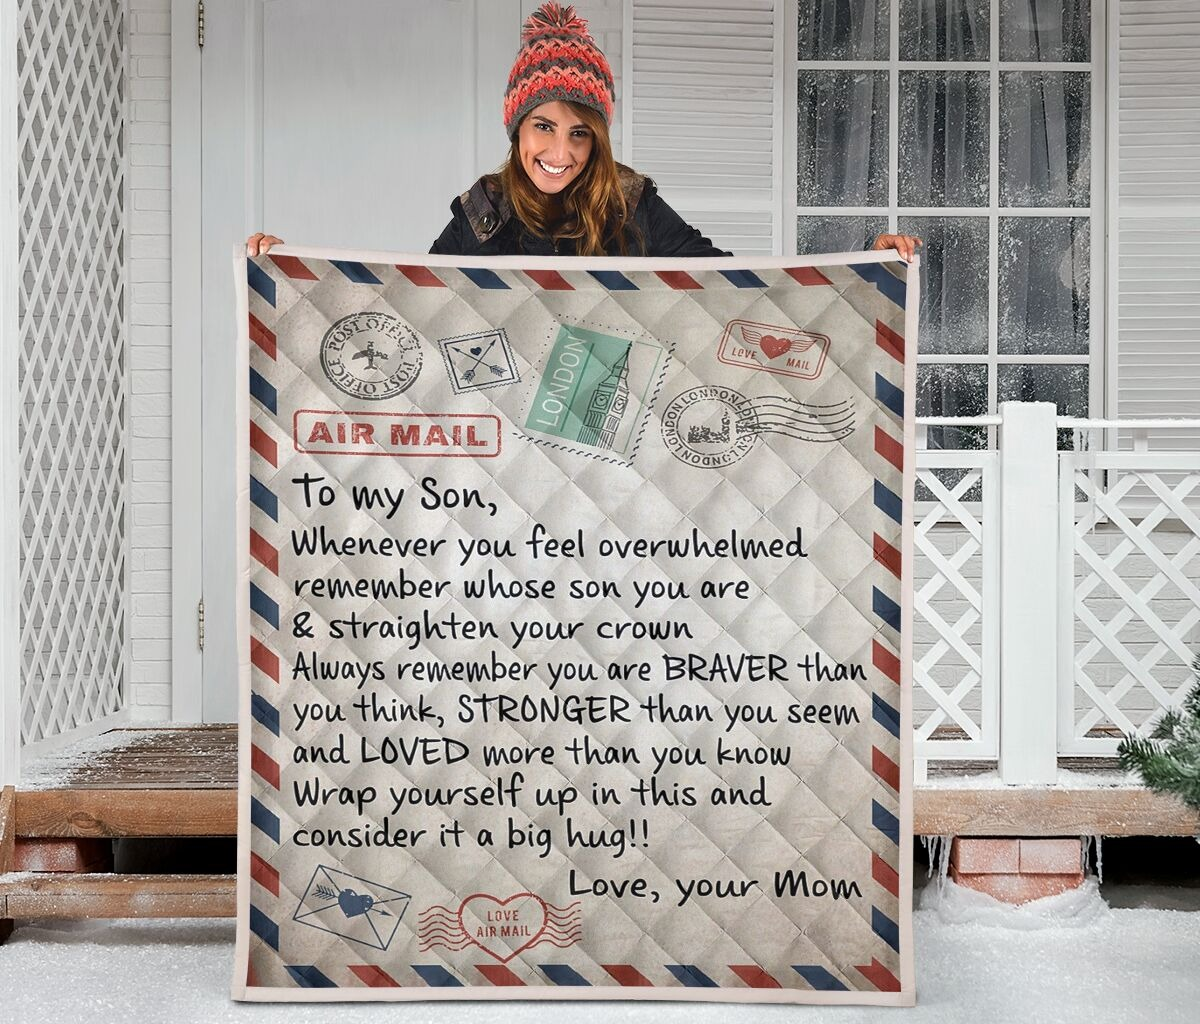 Air mail To my son whenever you feel overwhelmed blanket - LIMITED EDITION